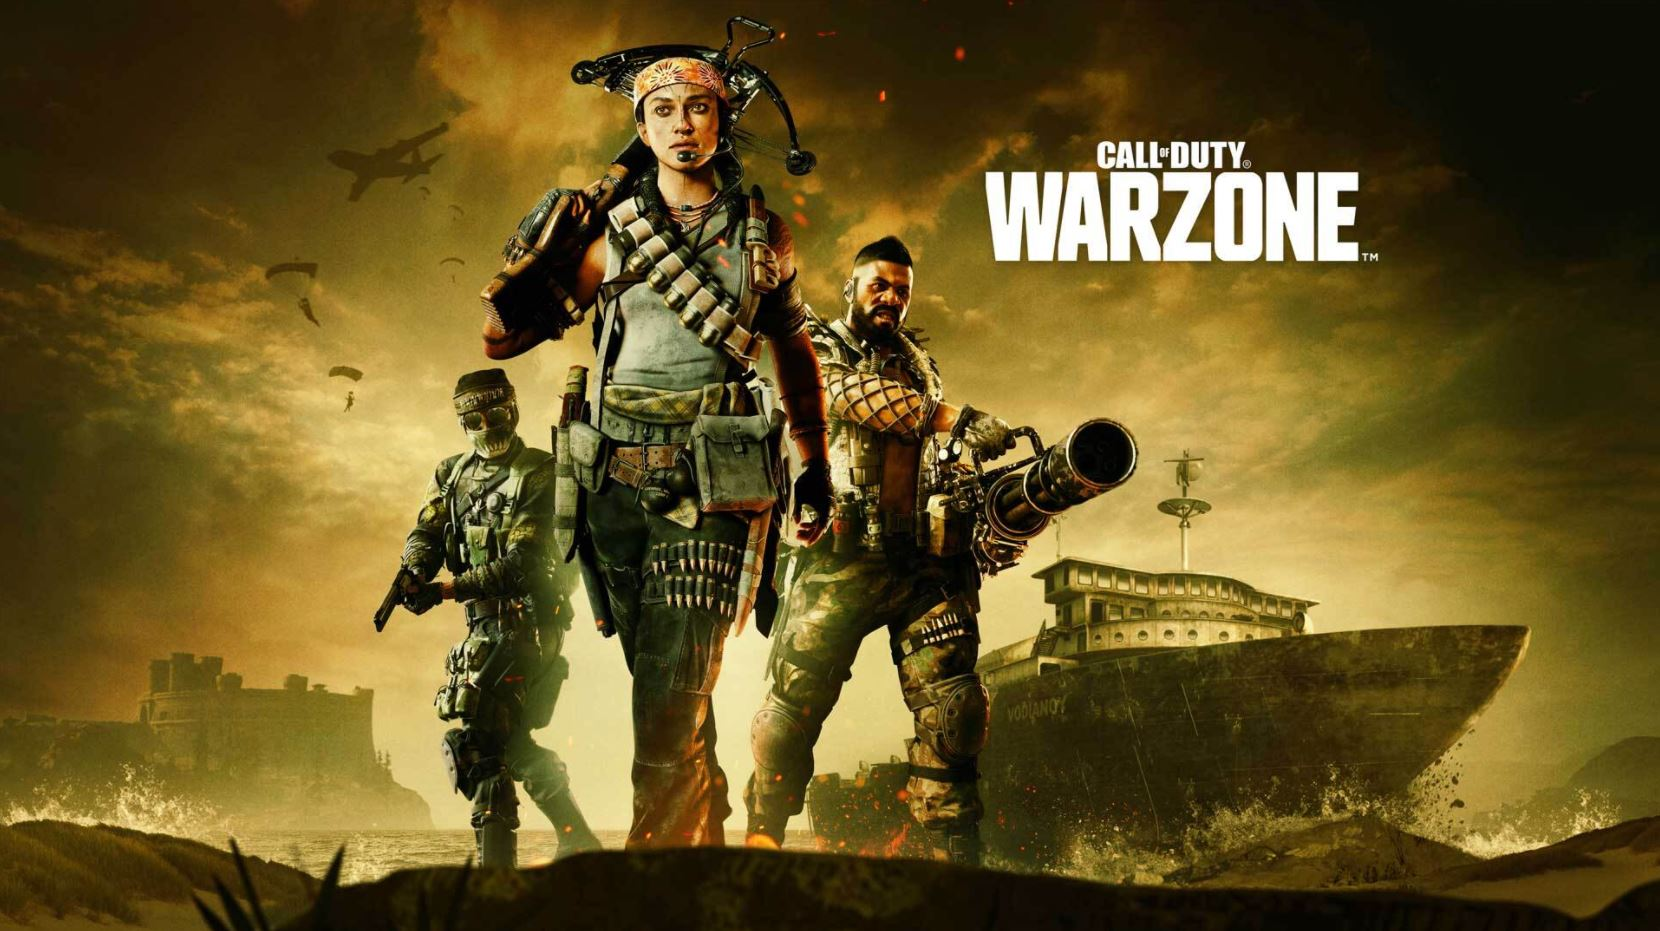 call-of-duty-warzone-news-reviews-videos